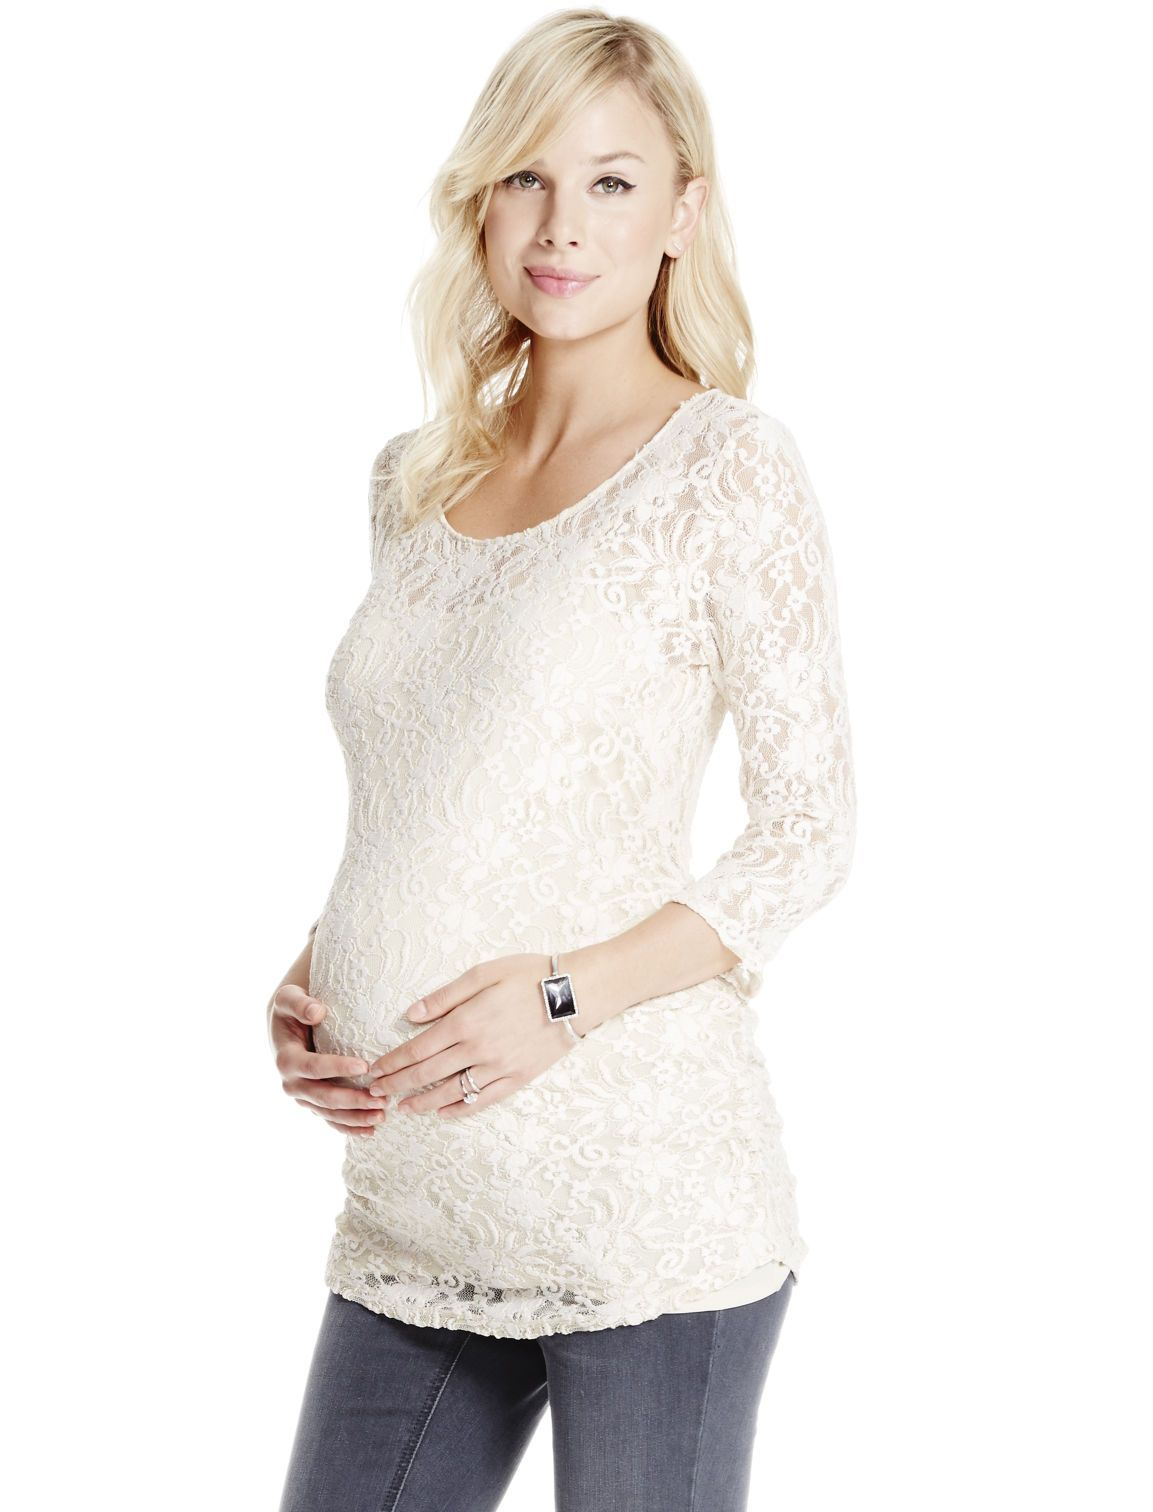 Dressed up floral patterned lace maternity top by jessica dressed up floral patterned lace maternity top by jessica simpson available at destination maternity ombrellifo Gallery